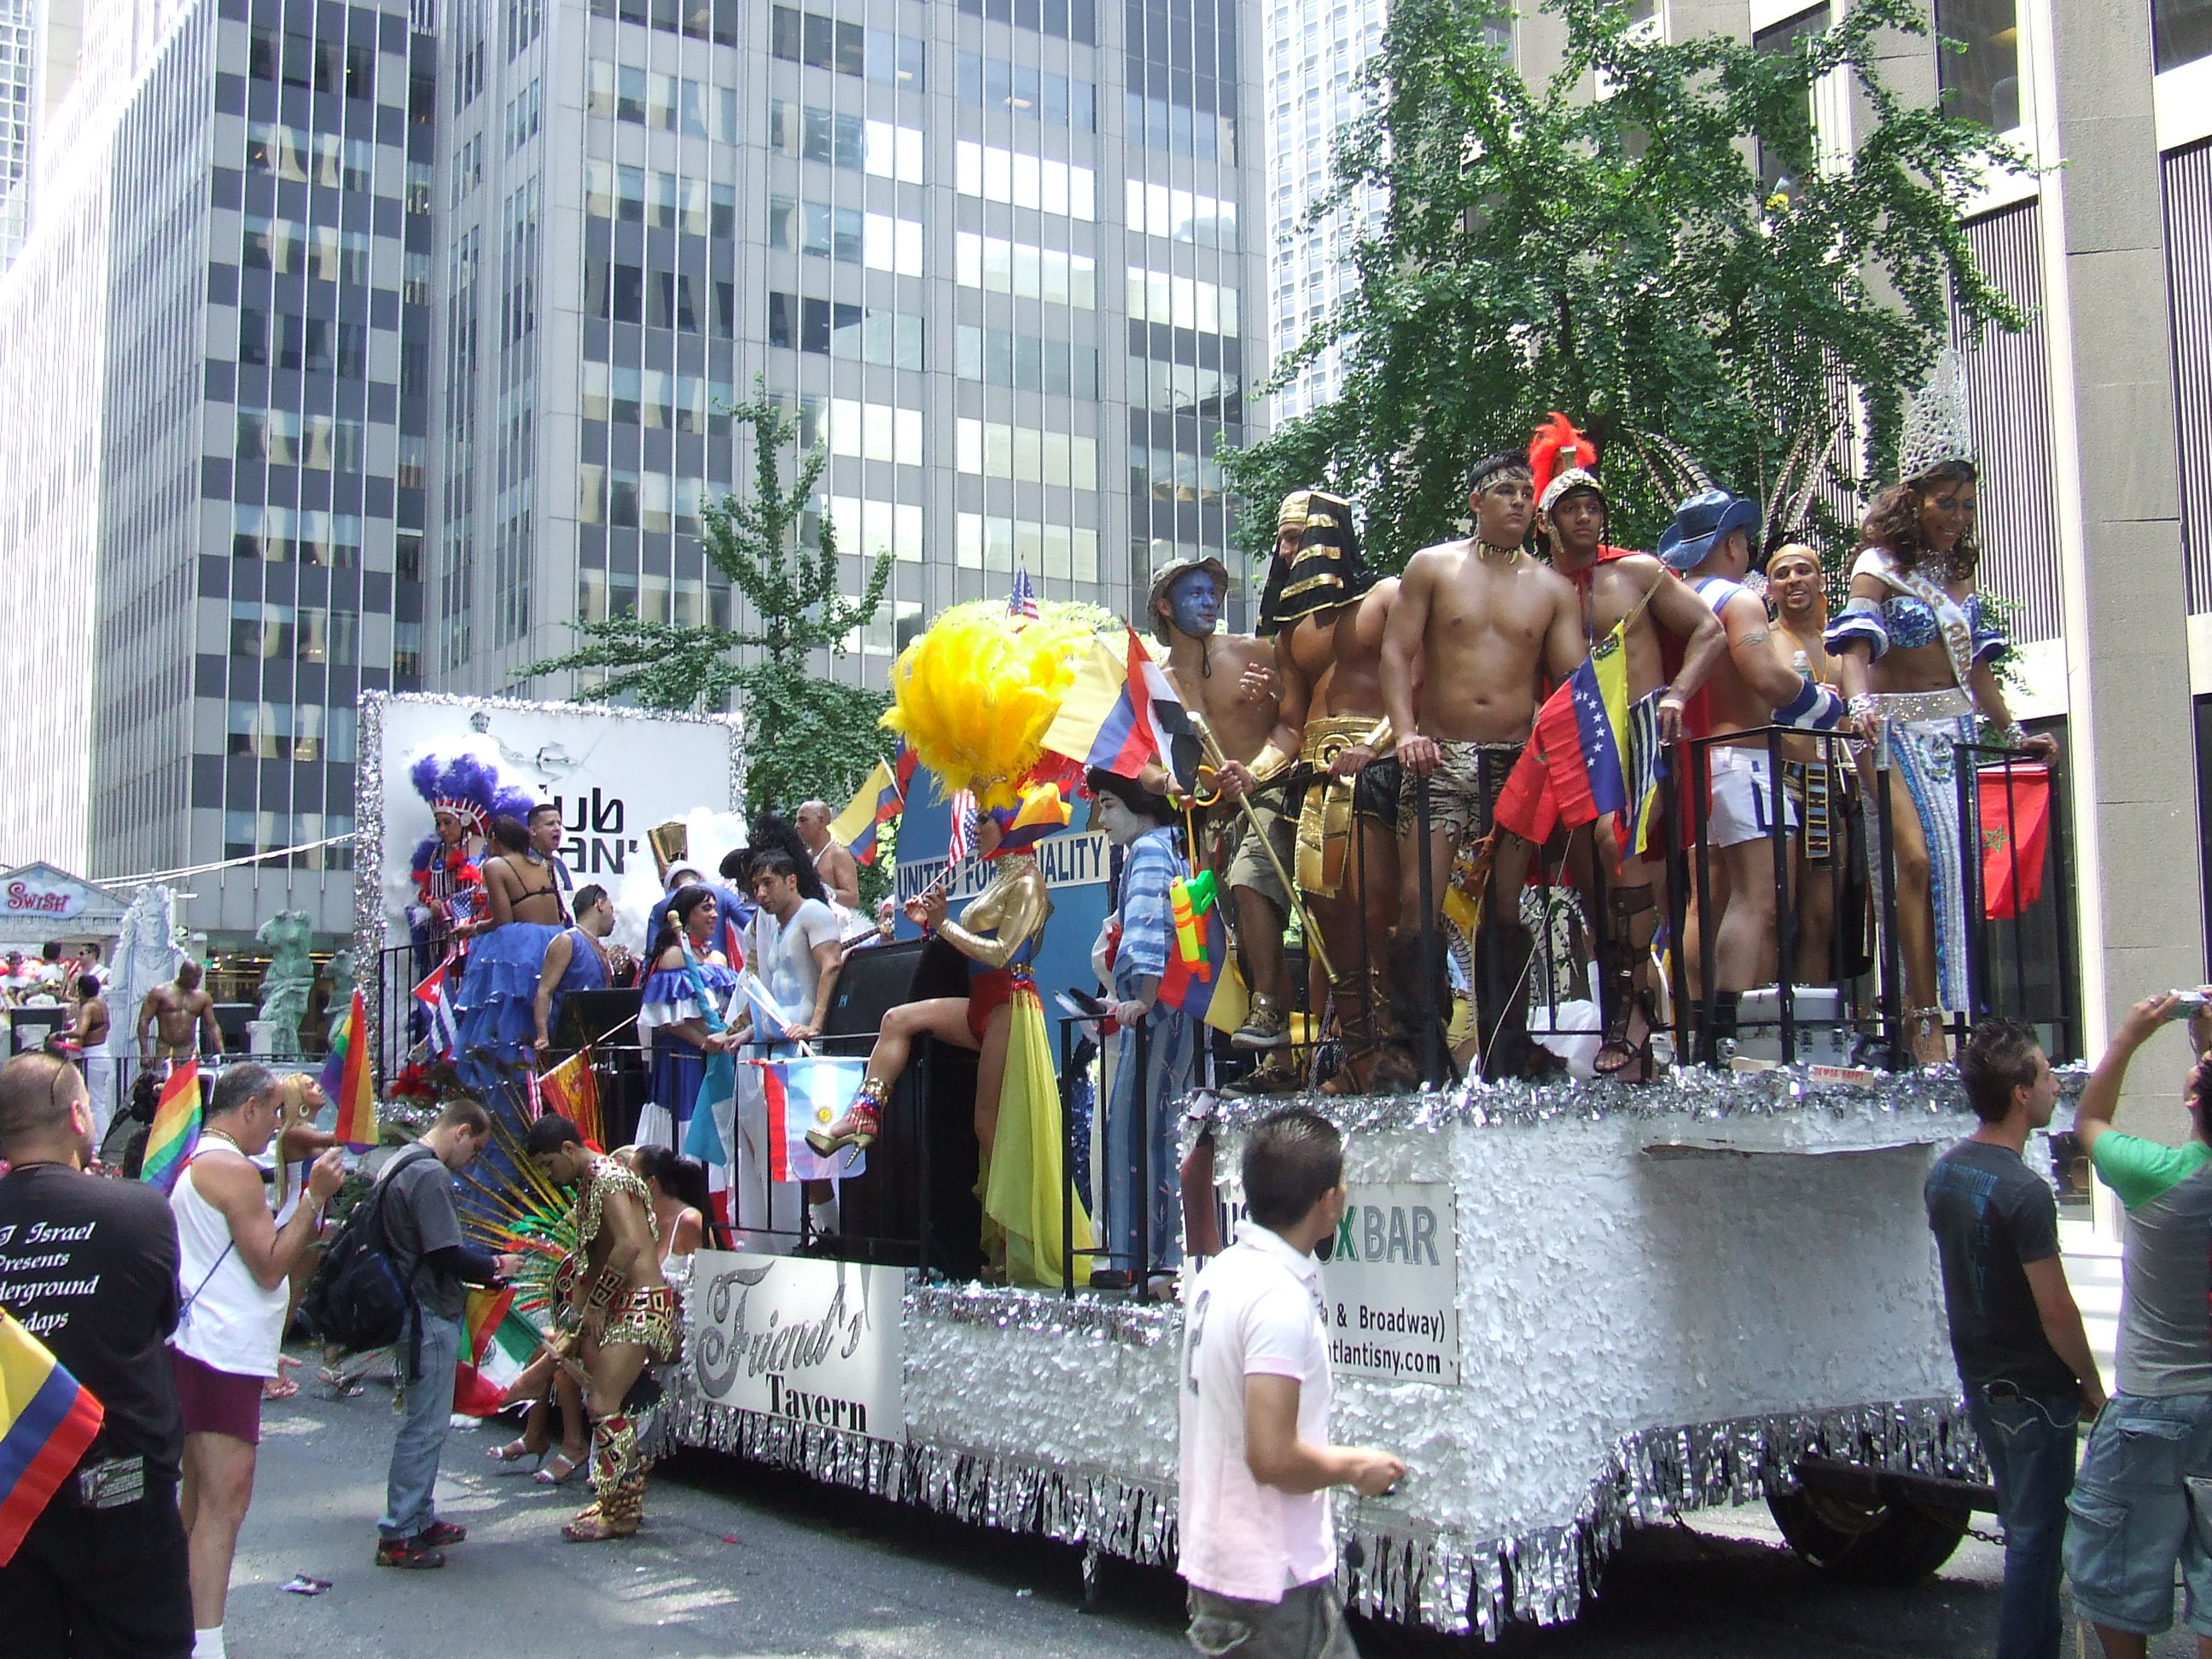 File:0367New York City Gay Parade.JPG